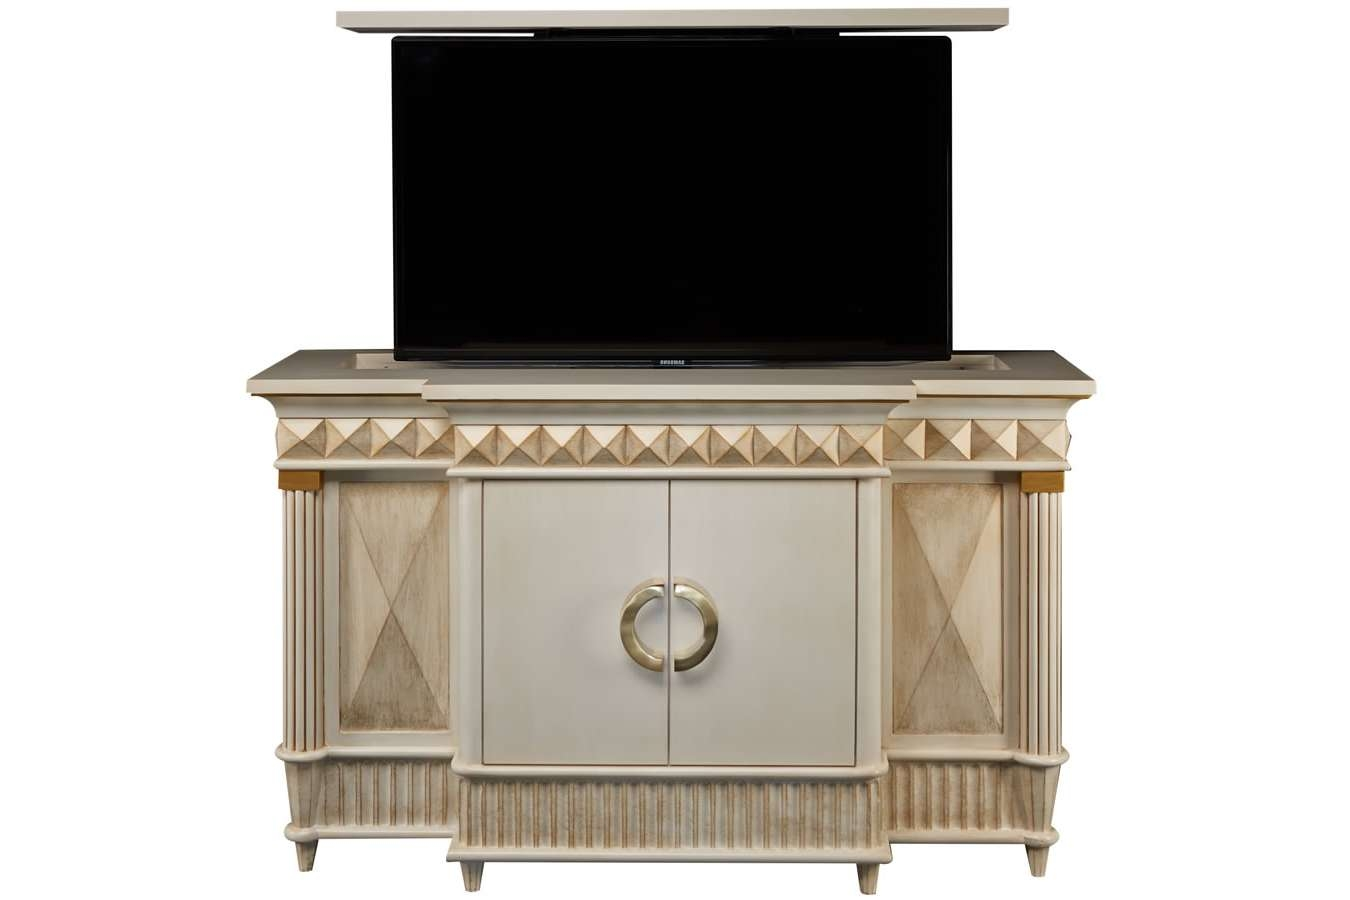 Furniture: Antique Flat Screen Tv Cabinet With Gold Curving Accent With Regard To Gold Tv Cabinets (View 9 of 20)